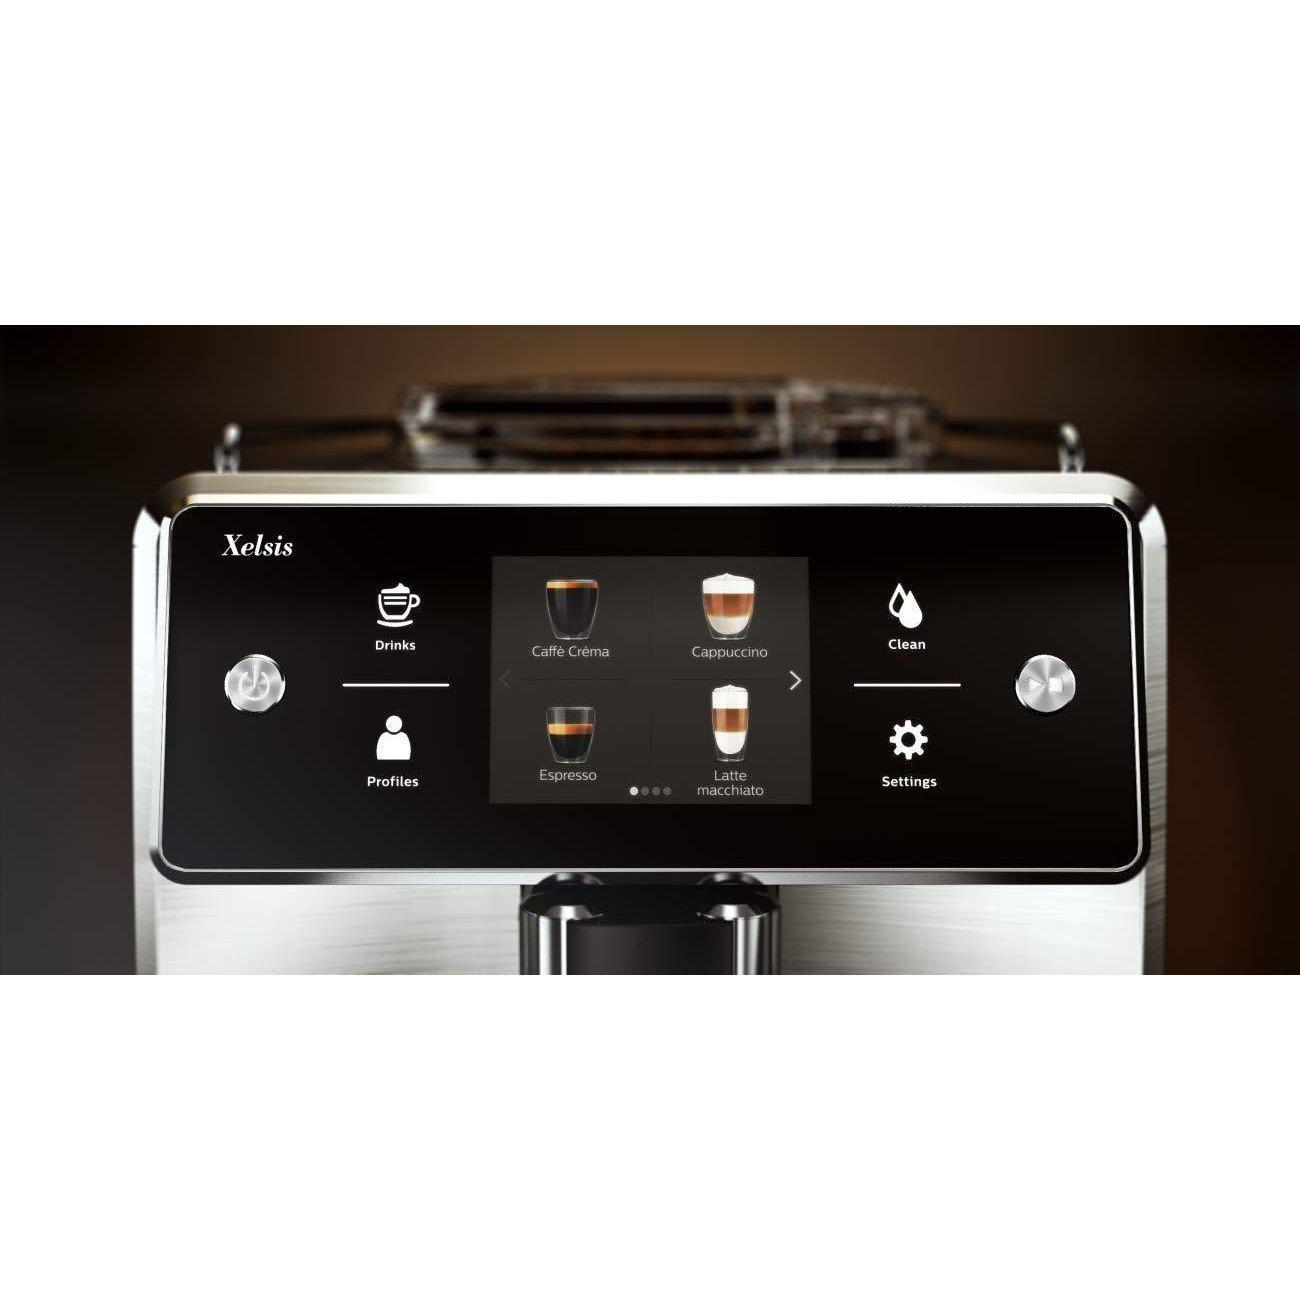 Philips Saeco SM7684/04 Xelsis Titanium Automatic Coffee Machine-Consiglio's Kitchenware